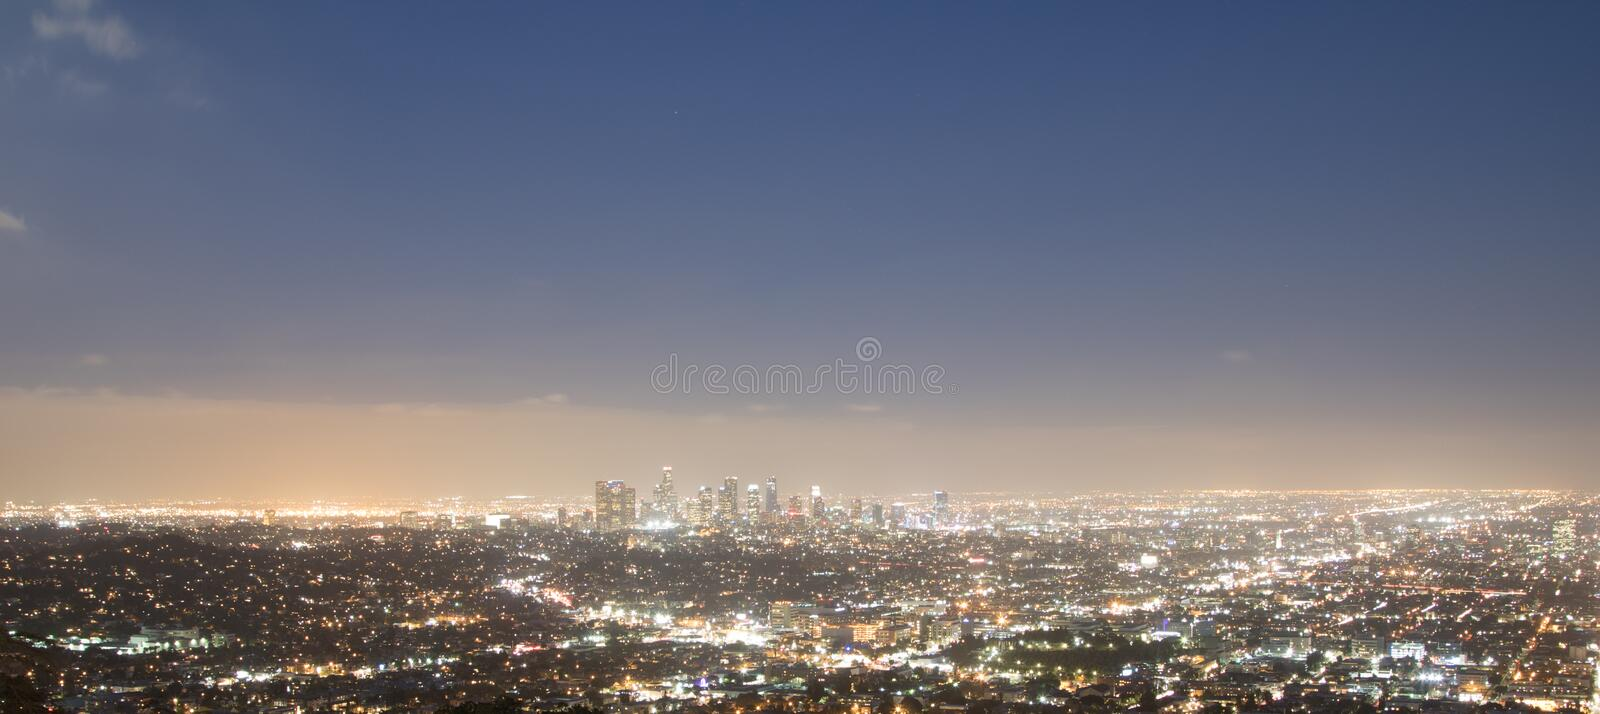 Horizon de Los Angeles la nuit d'une colline image libre de droits